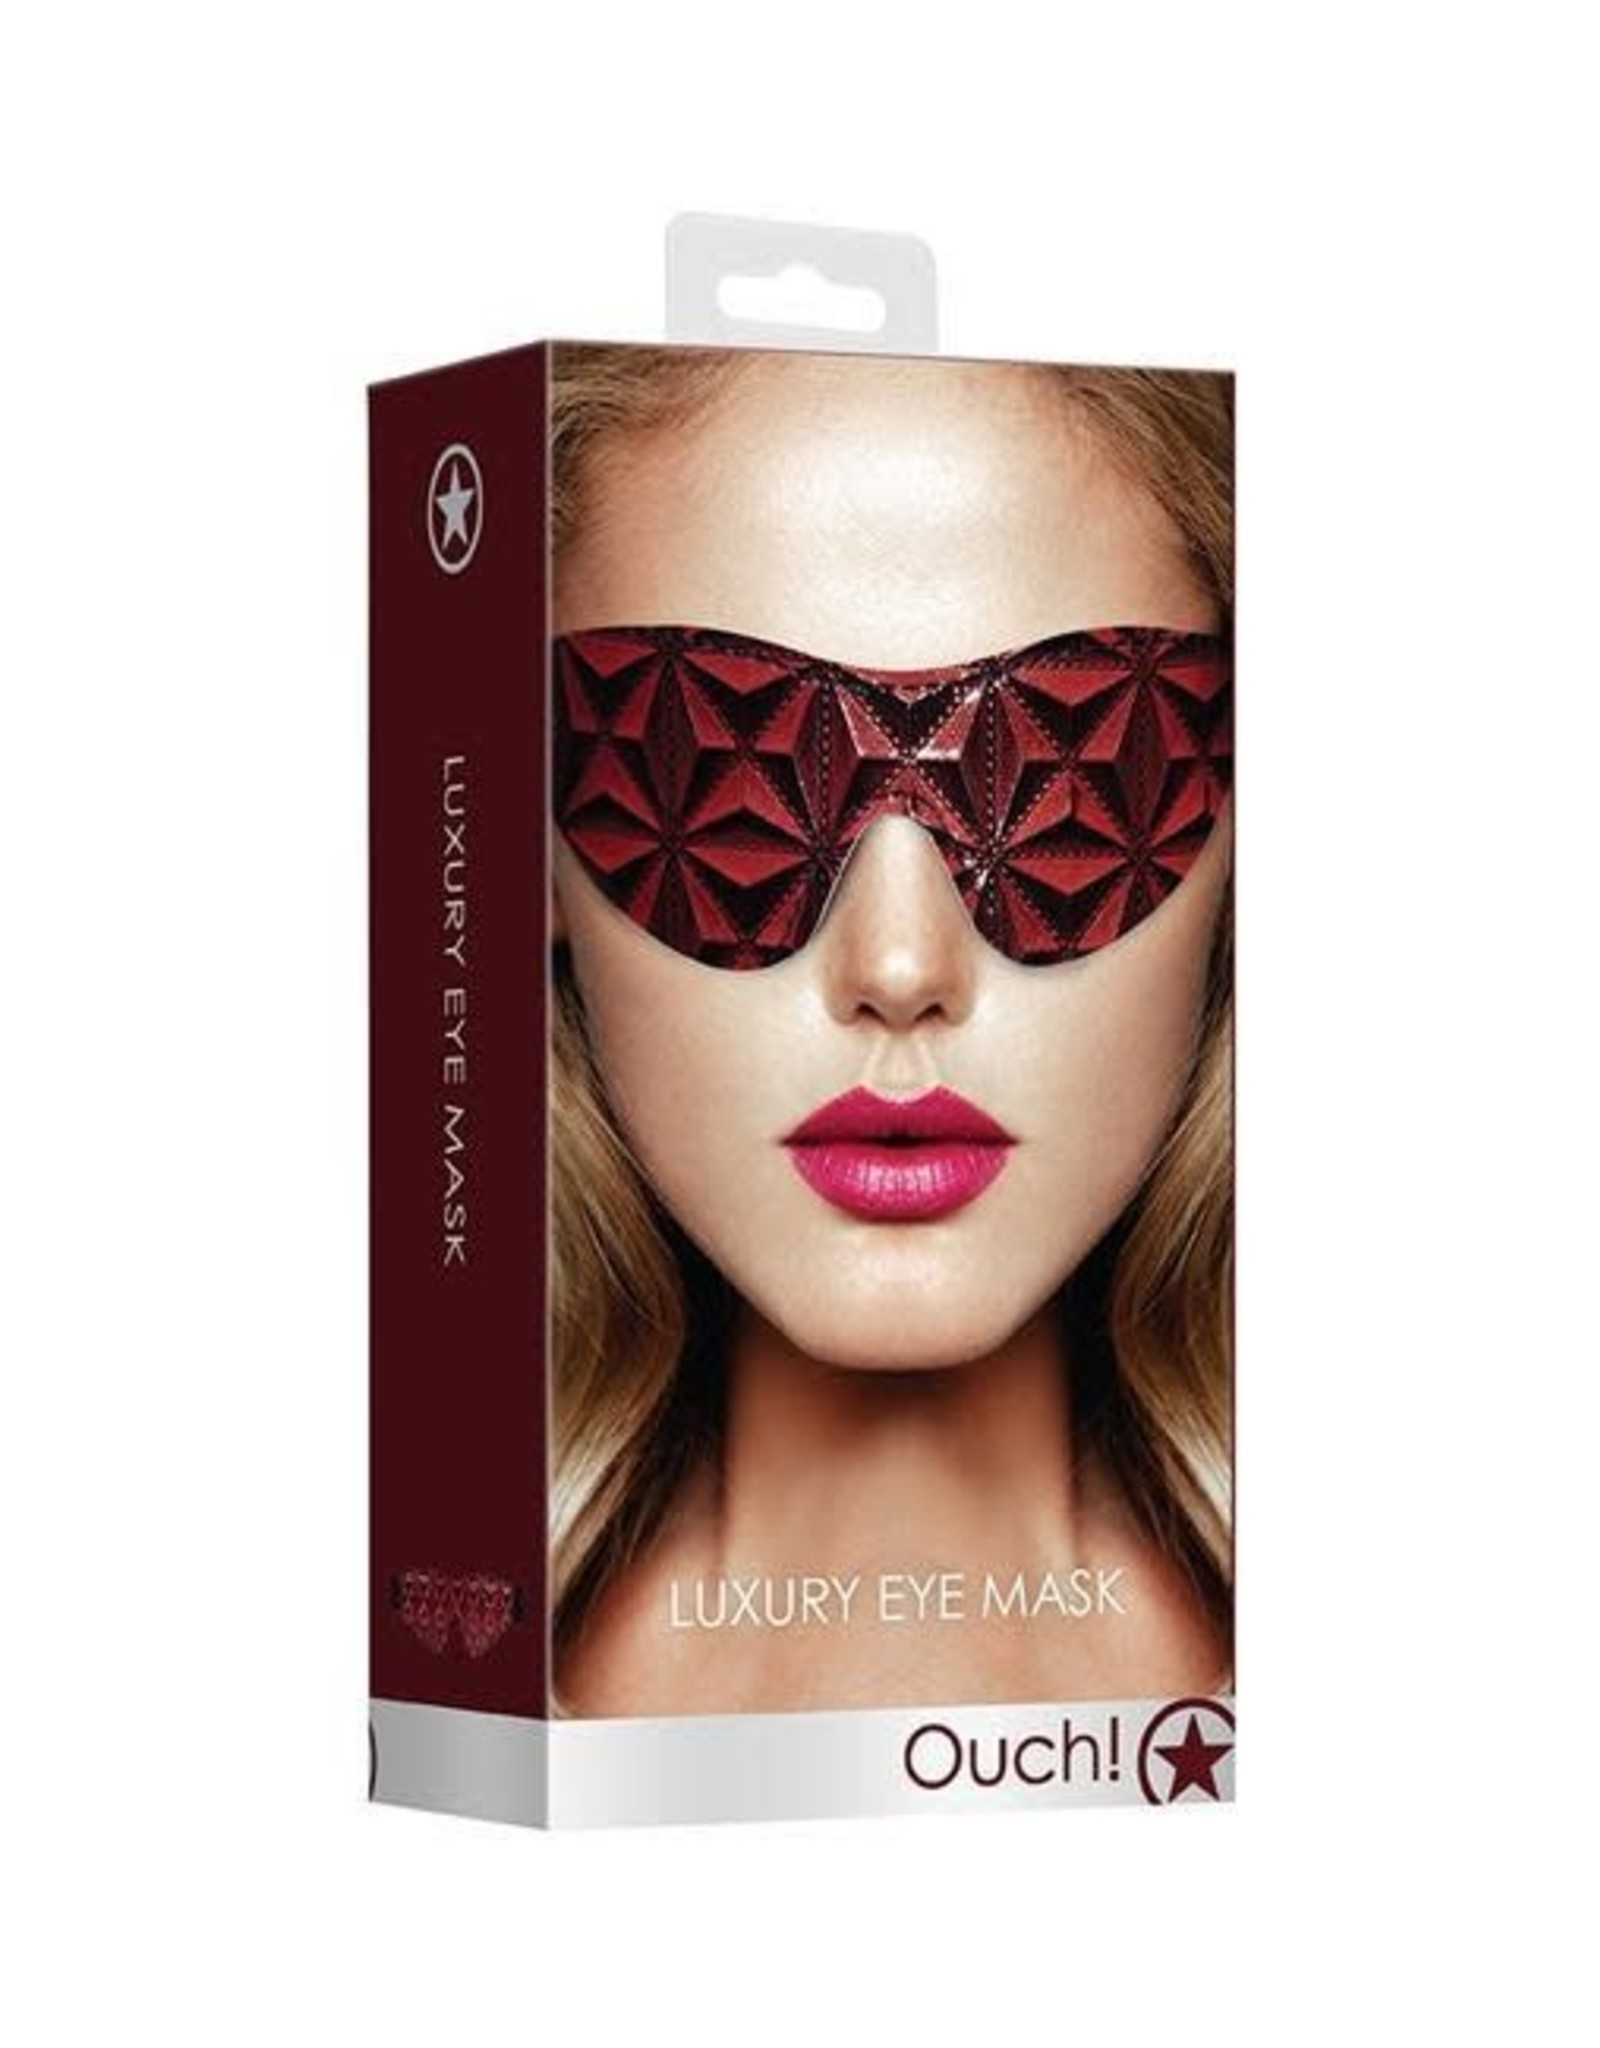 Ouch! Ouch! Luxury Eye Mask in Burgundy